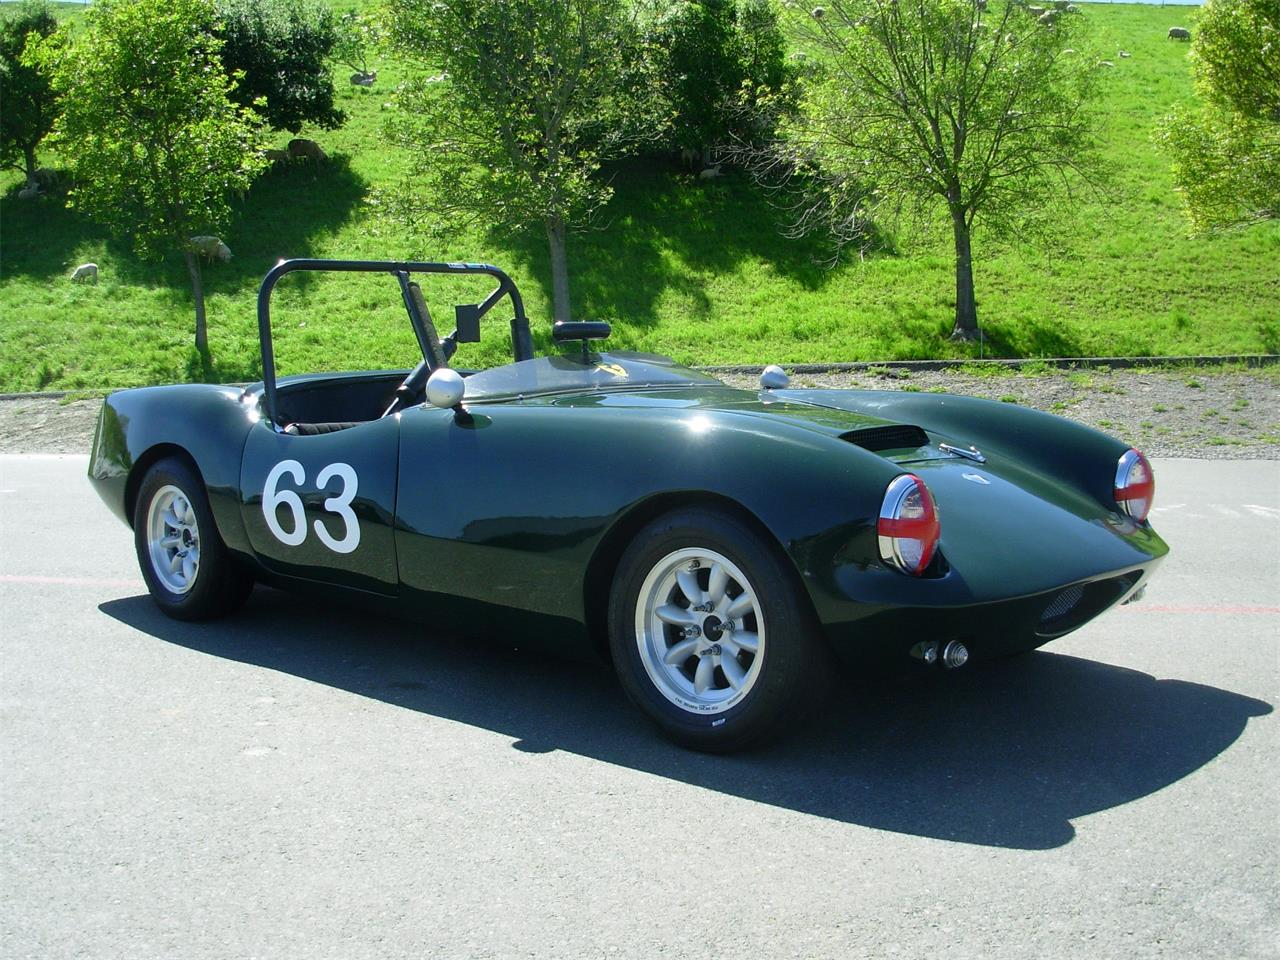 1963 Elva Courier Mark III for sale in Berkeley, CA